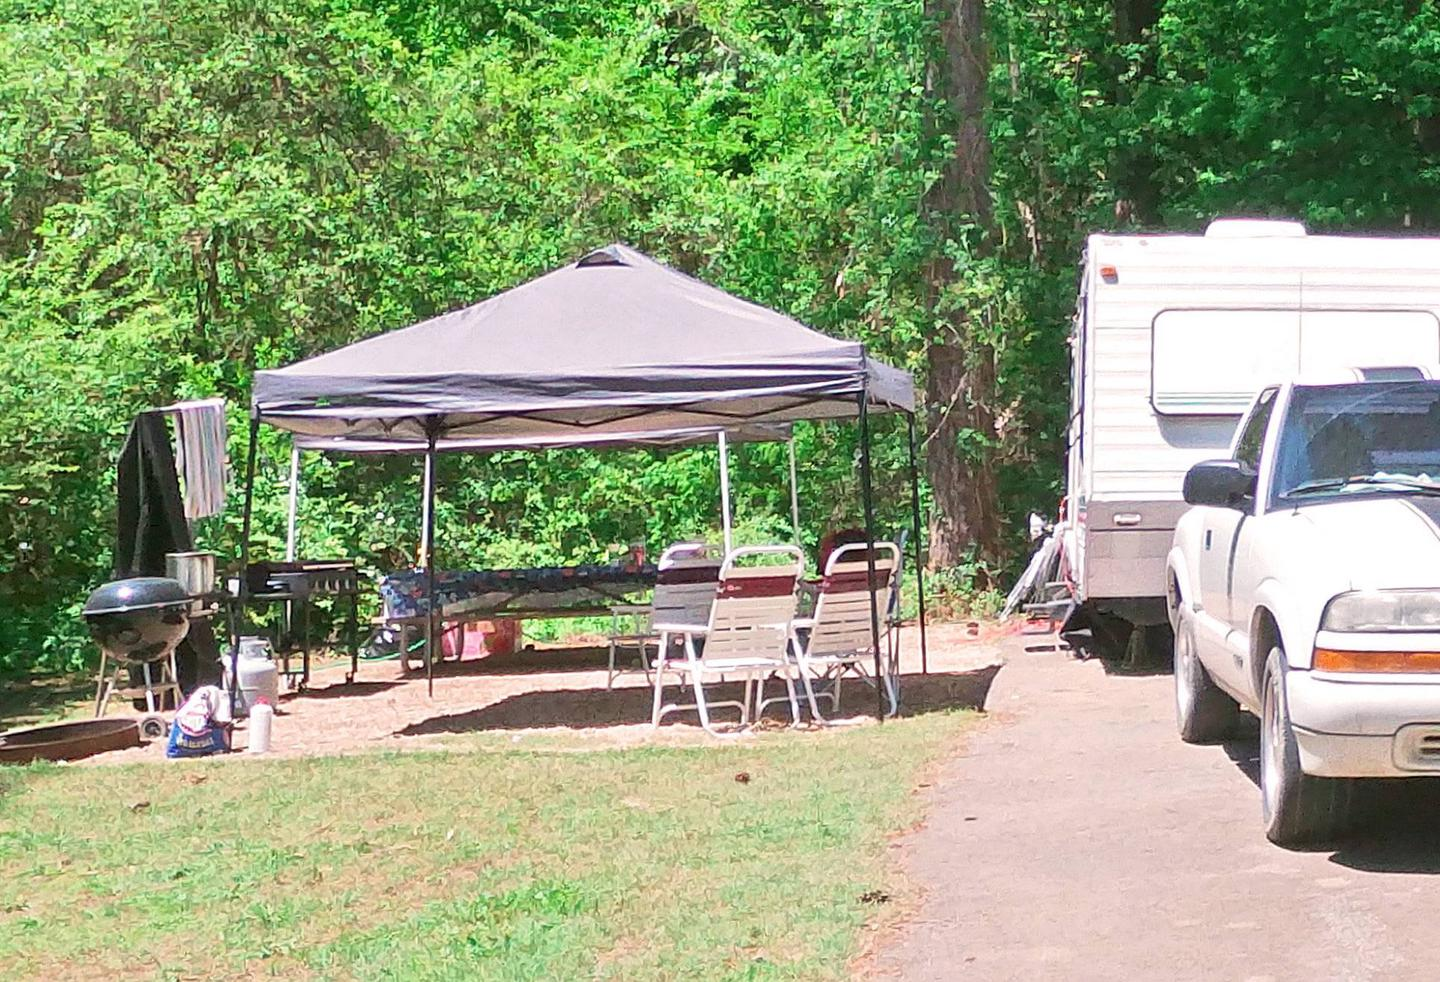 Campsite view, awning-side clearance.Sweetwater Campground, campsite 55.